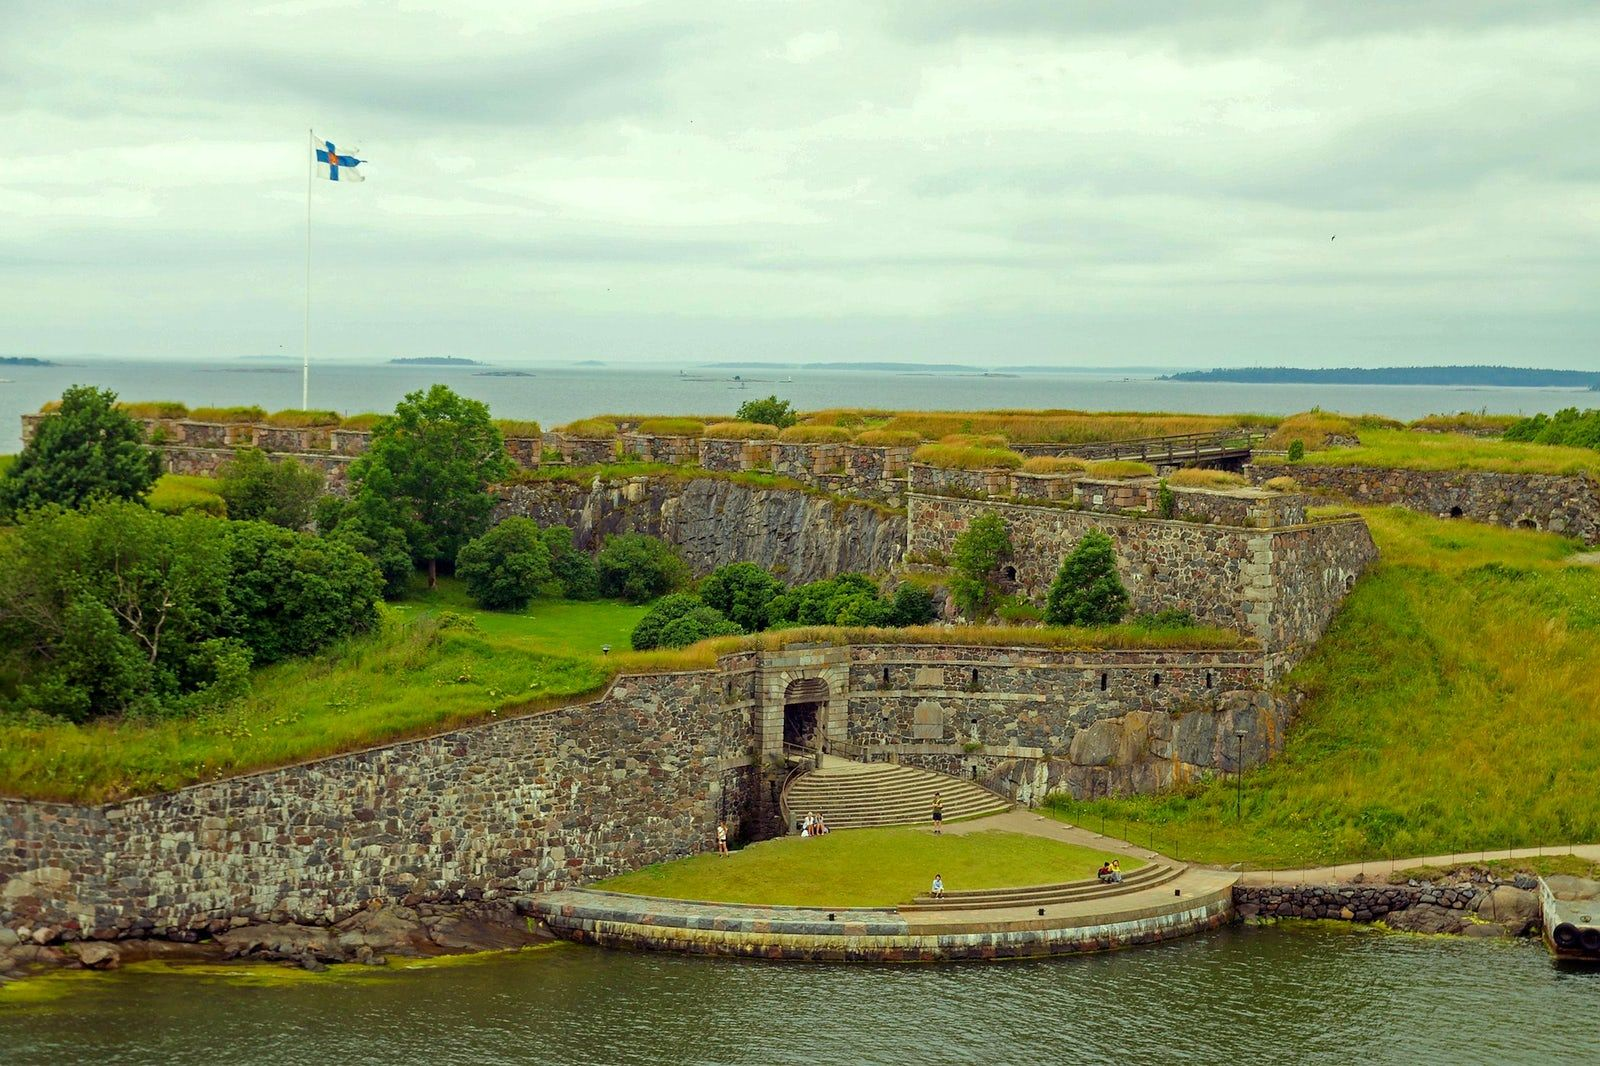 Visit King's Gate, Suomenlinna | Places to visit, Helsinki, Finland